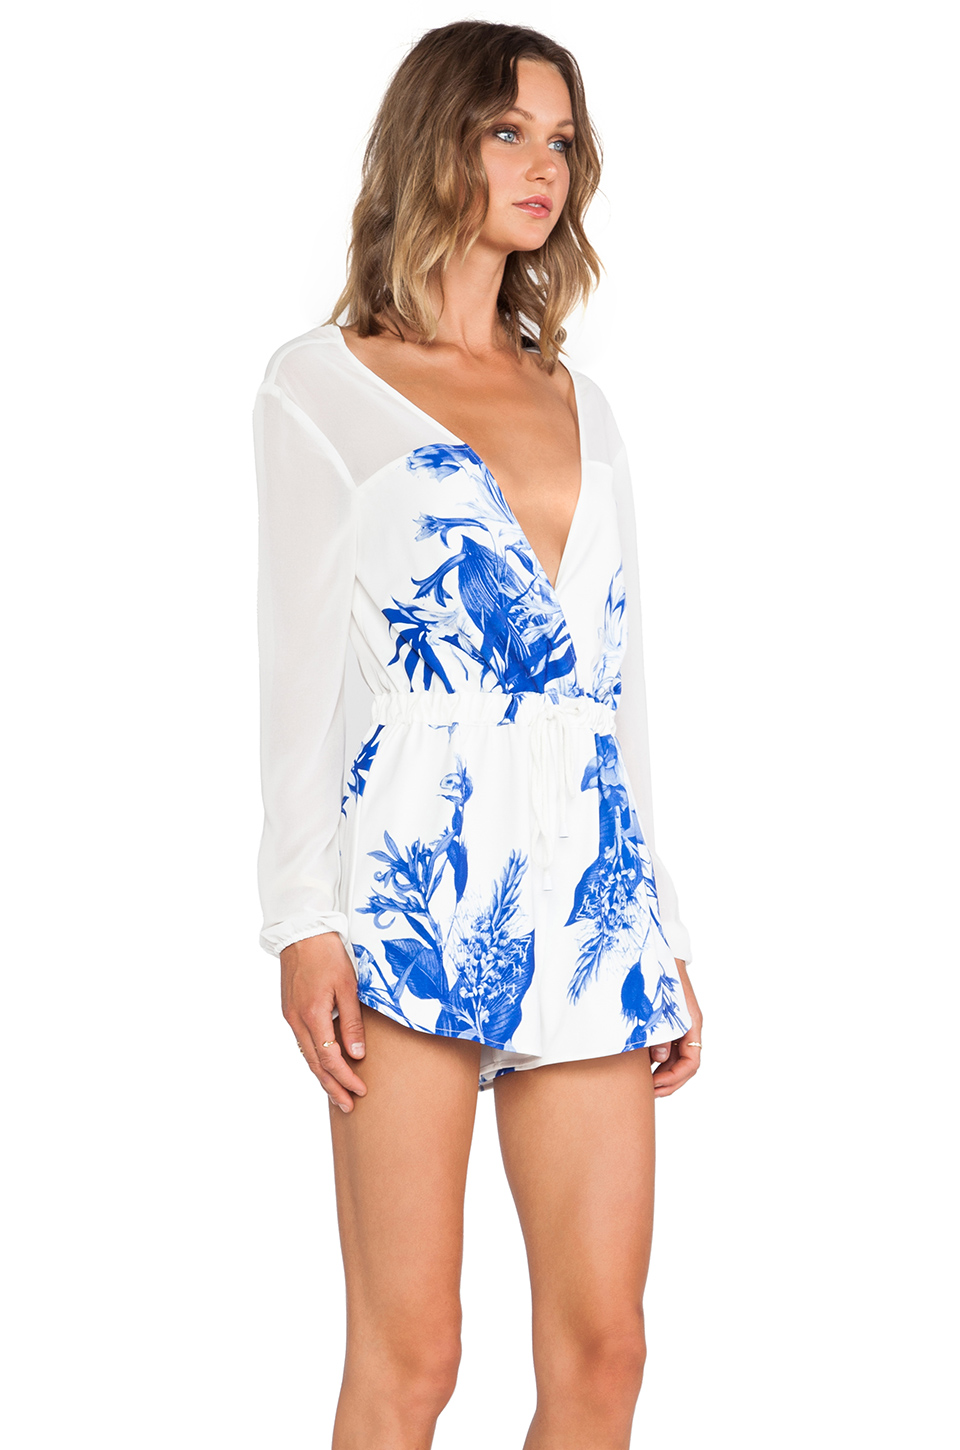 Style stalker love on top romper in blue floral from revolveclothing.com